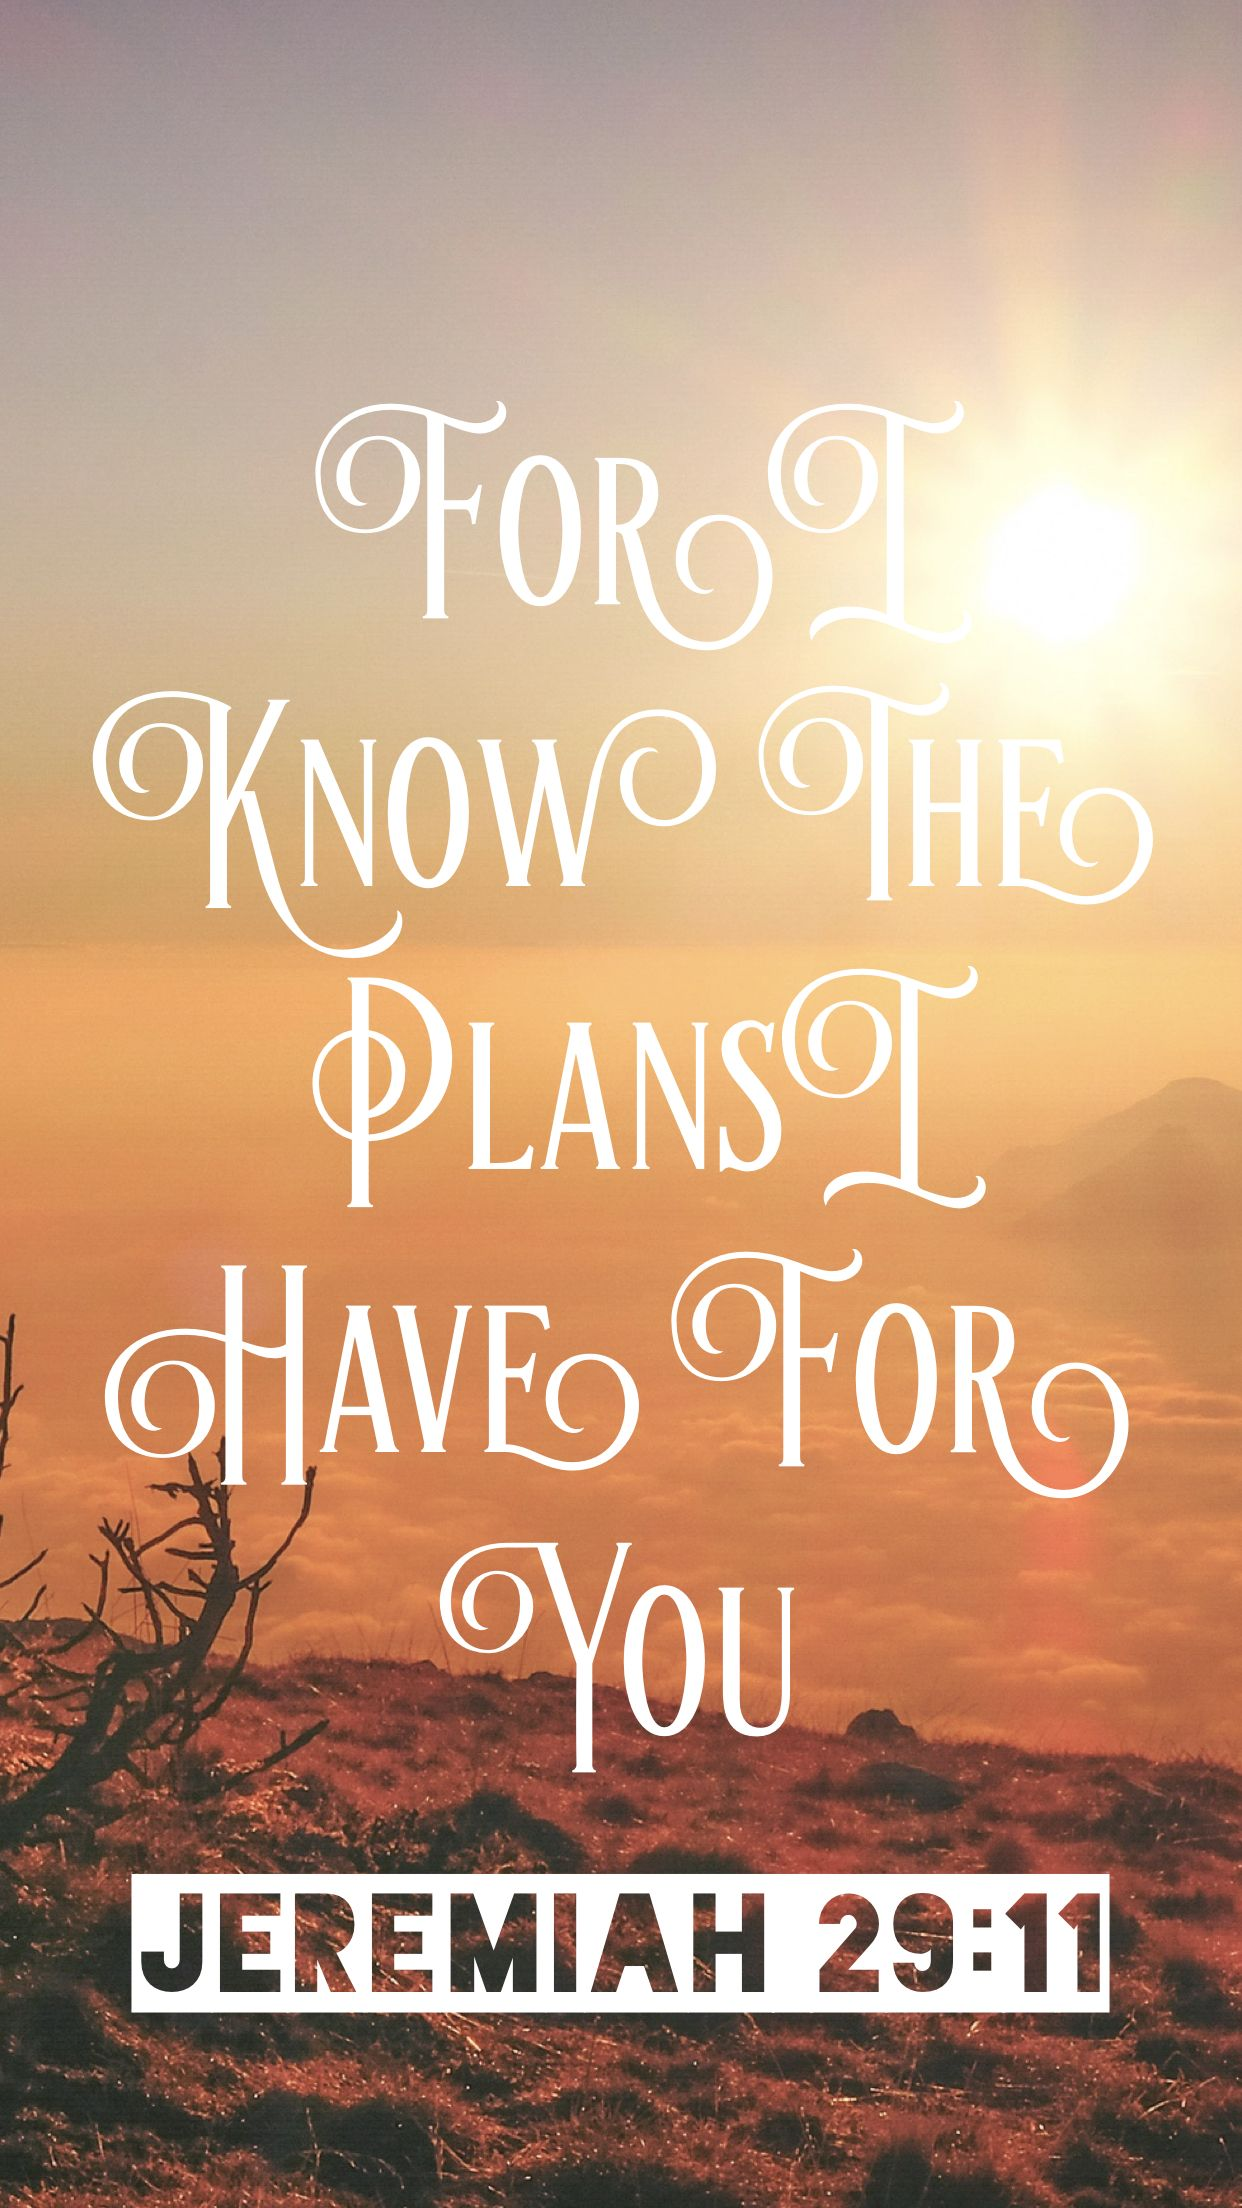 Inspirational Quotes On Life Challenges Wallpapers Phone Wallpaper Jeremiah 29 11 Well Versed